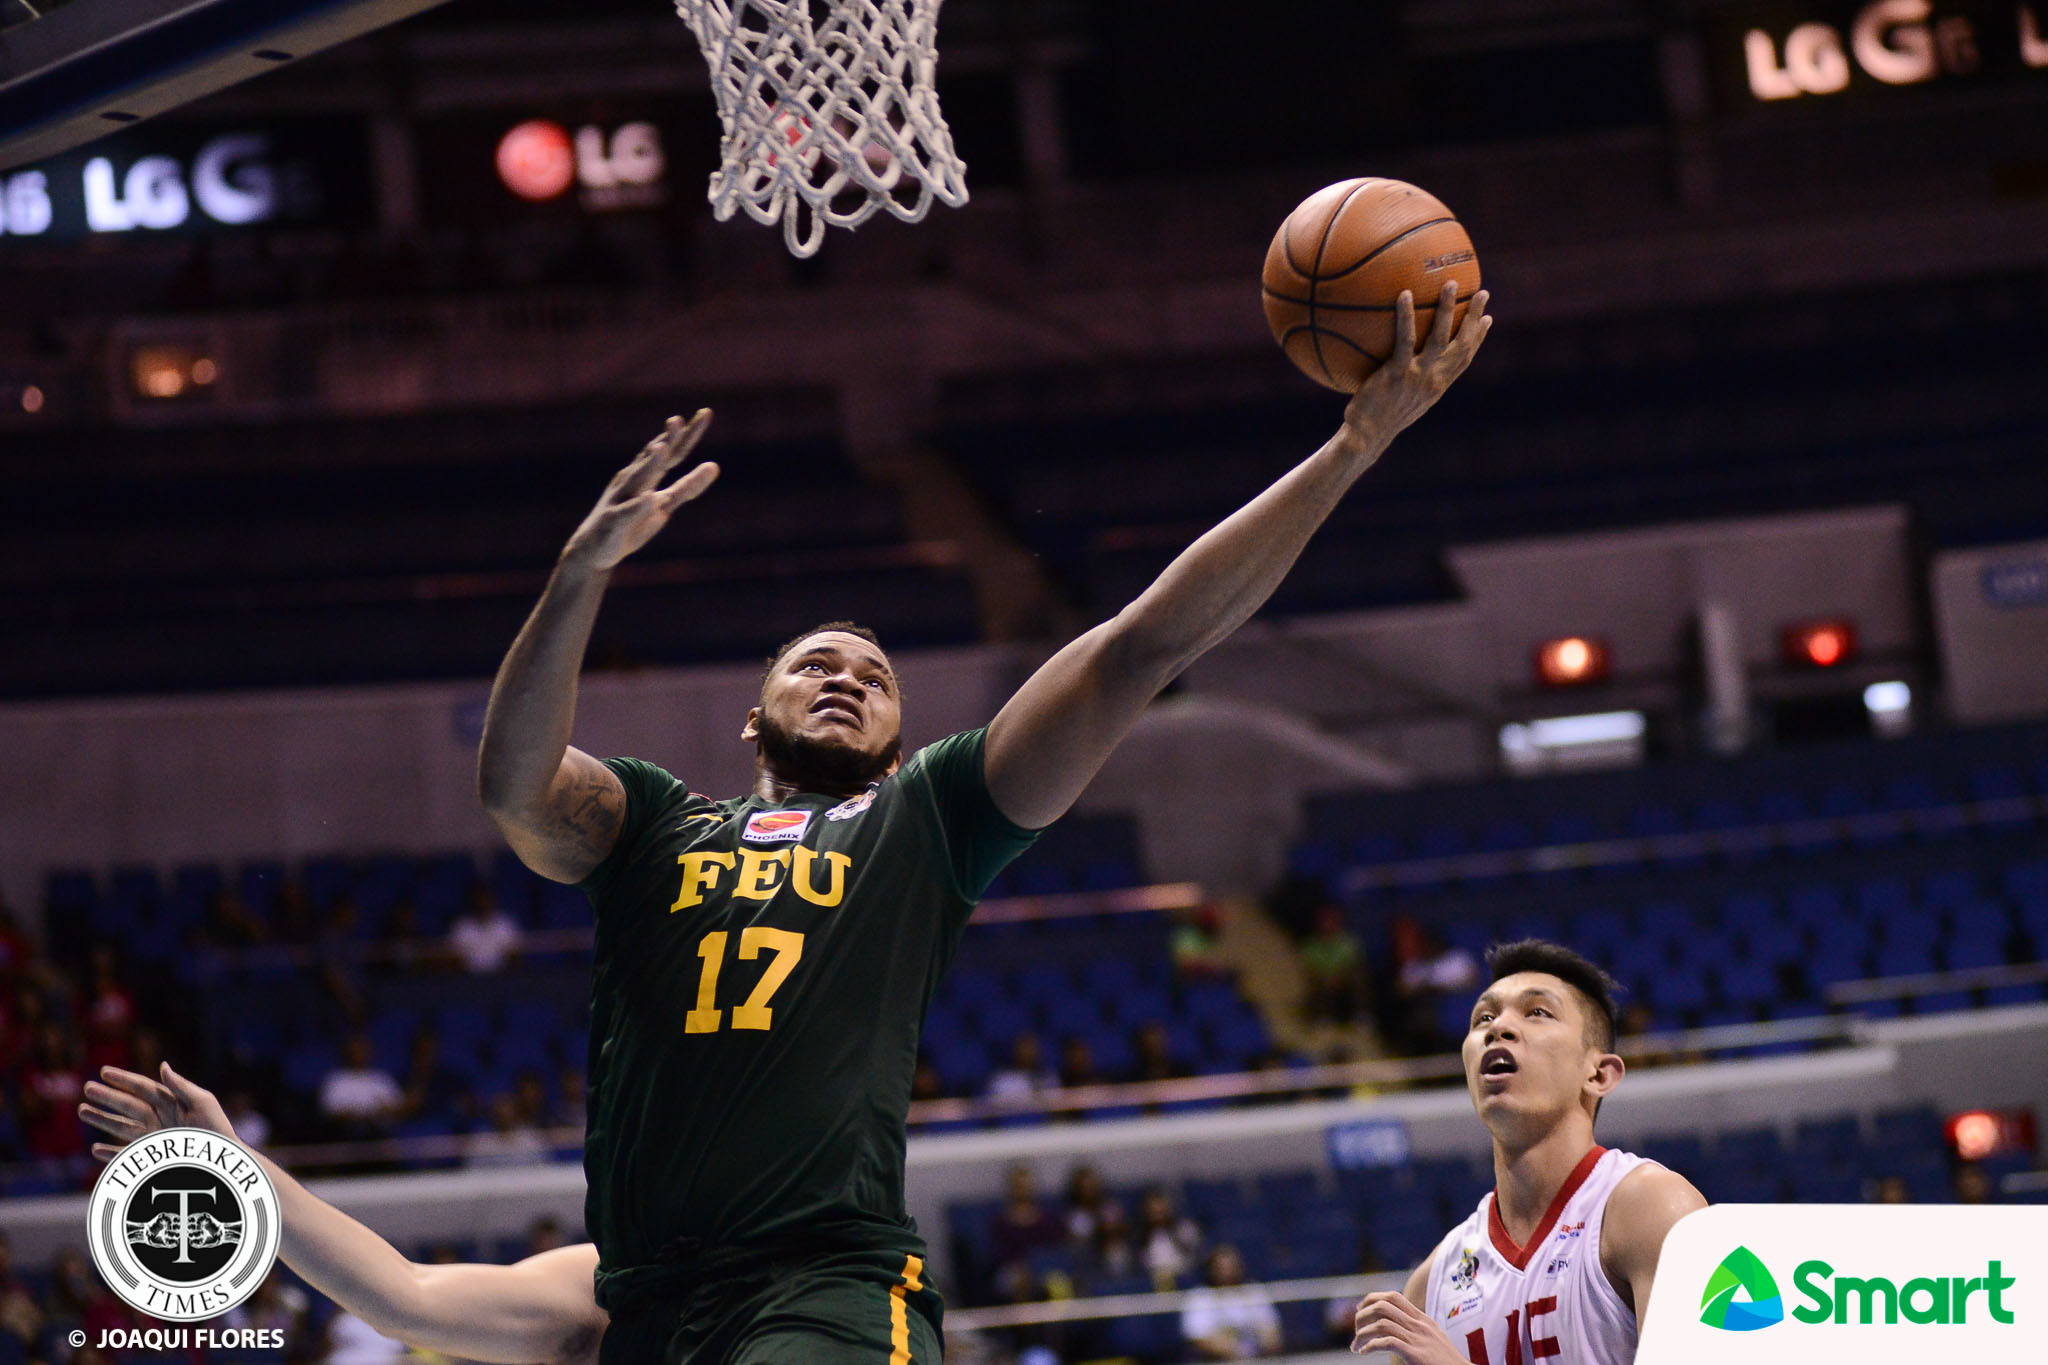 Philippine Sports News - Tiebreaker Times FEU arrests two-game skid, ends UE's playoff hopes Basketball FEU News UAAP UE  UE Men's Basketball UAAP Season 80 Men's Basketball UAAP Season 80 Prince Orizu Olsen Racela Mark Olayon Jasper Parker FEU Men's Basketball Derrick Pumaren Arvin Tolentino Alvin Pasaol